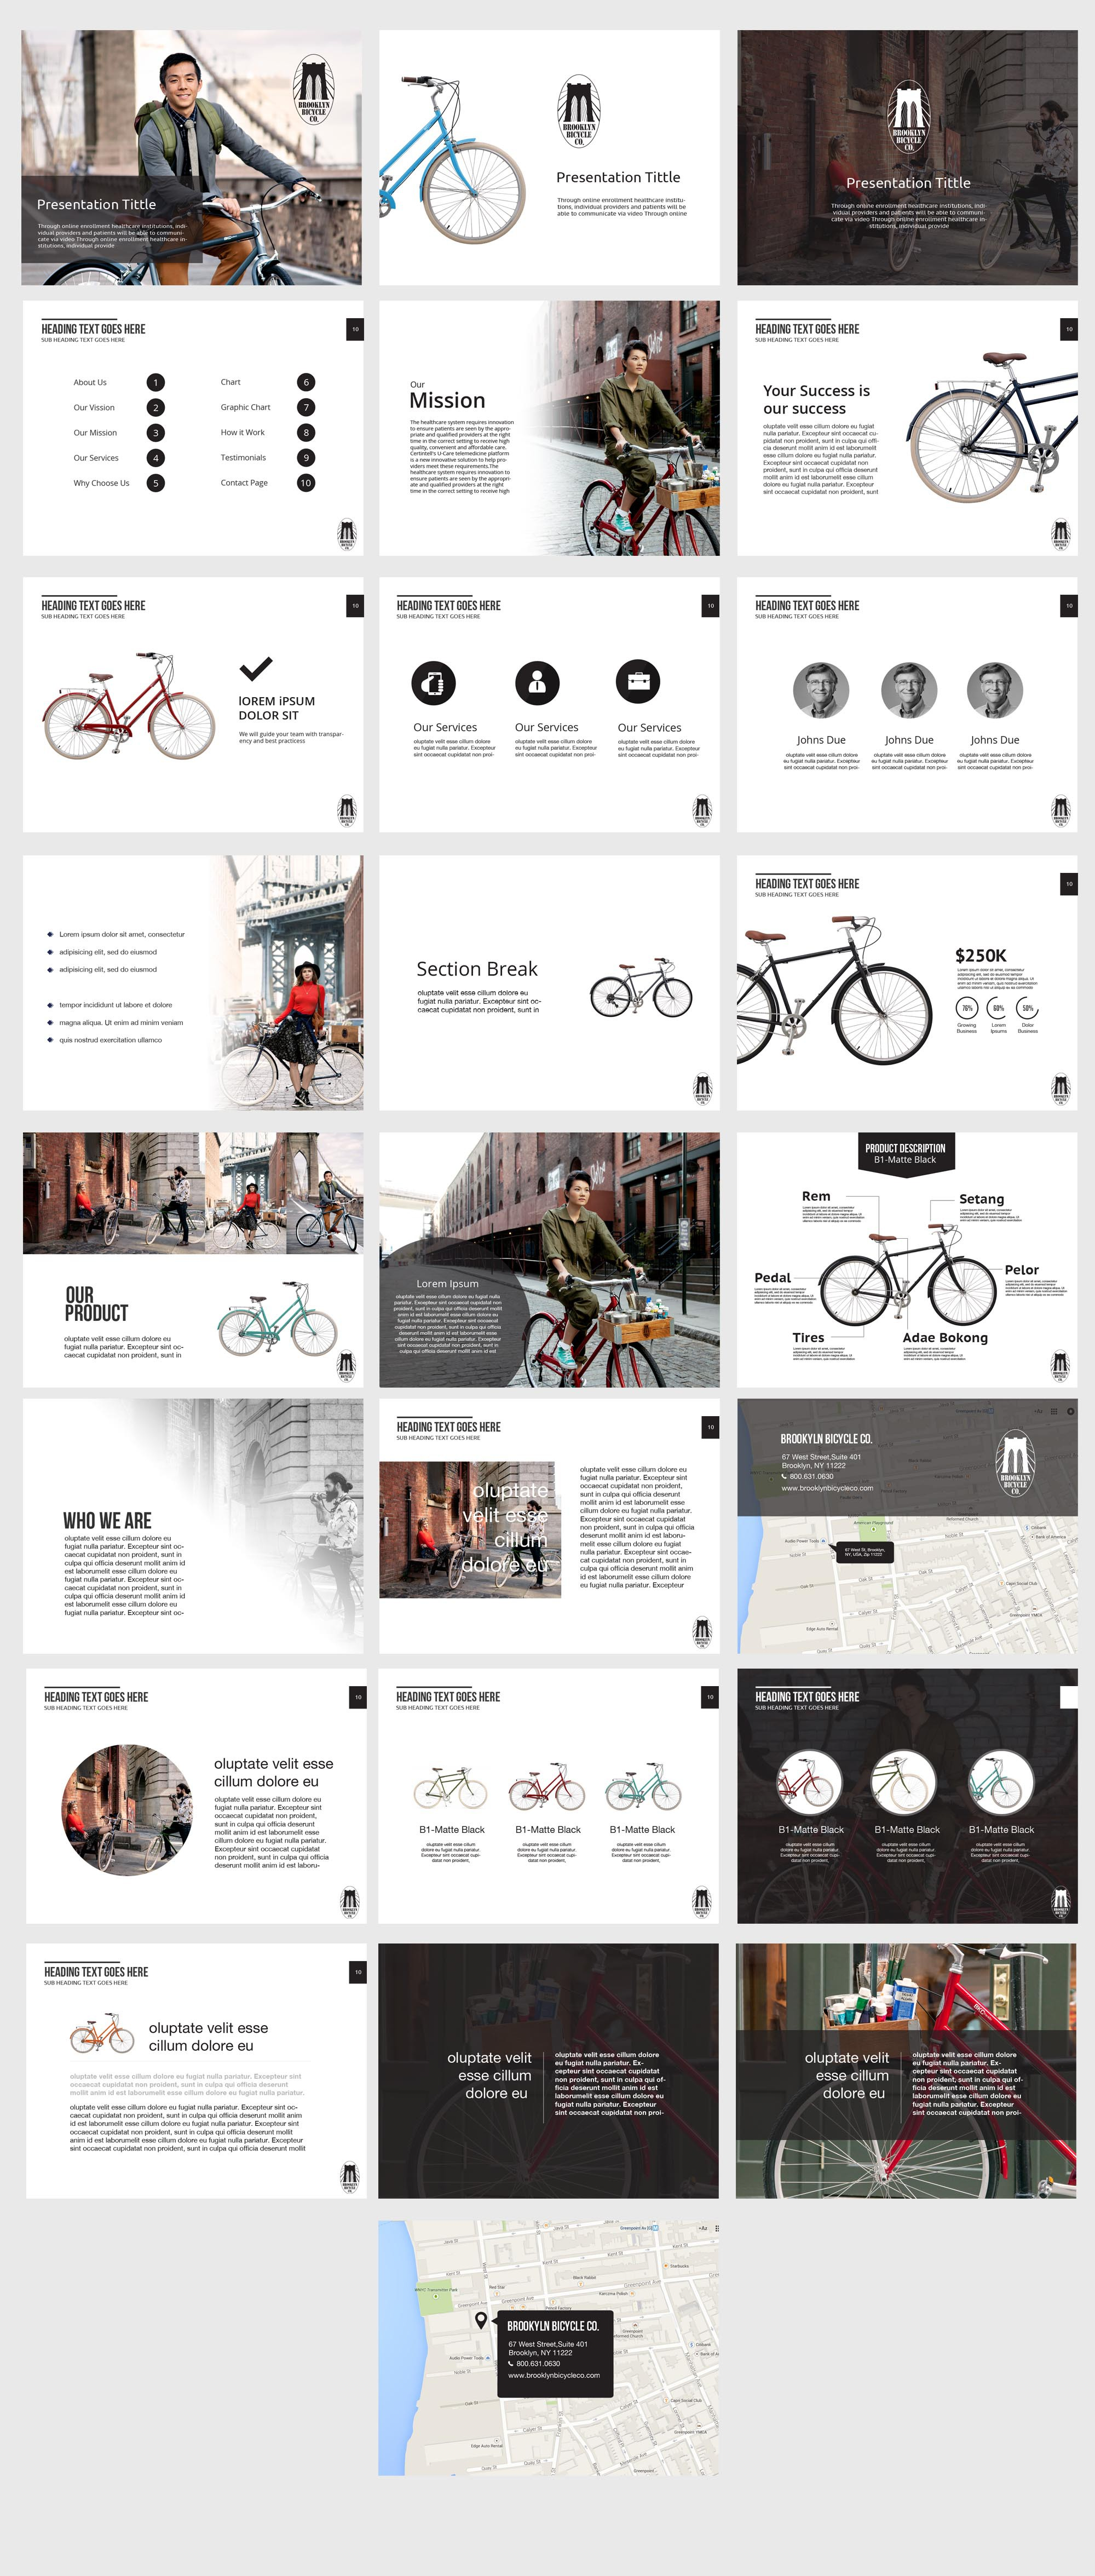 Powerpoint Design for Lifestyle Brand - Title Page & Master Slide